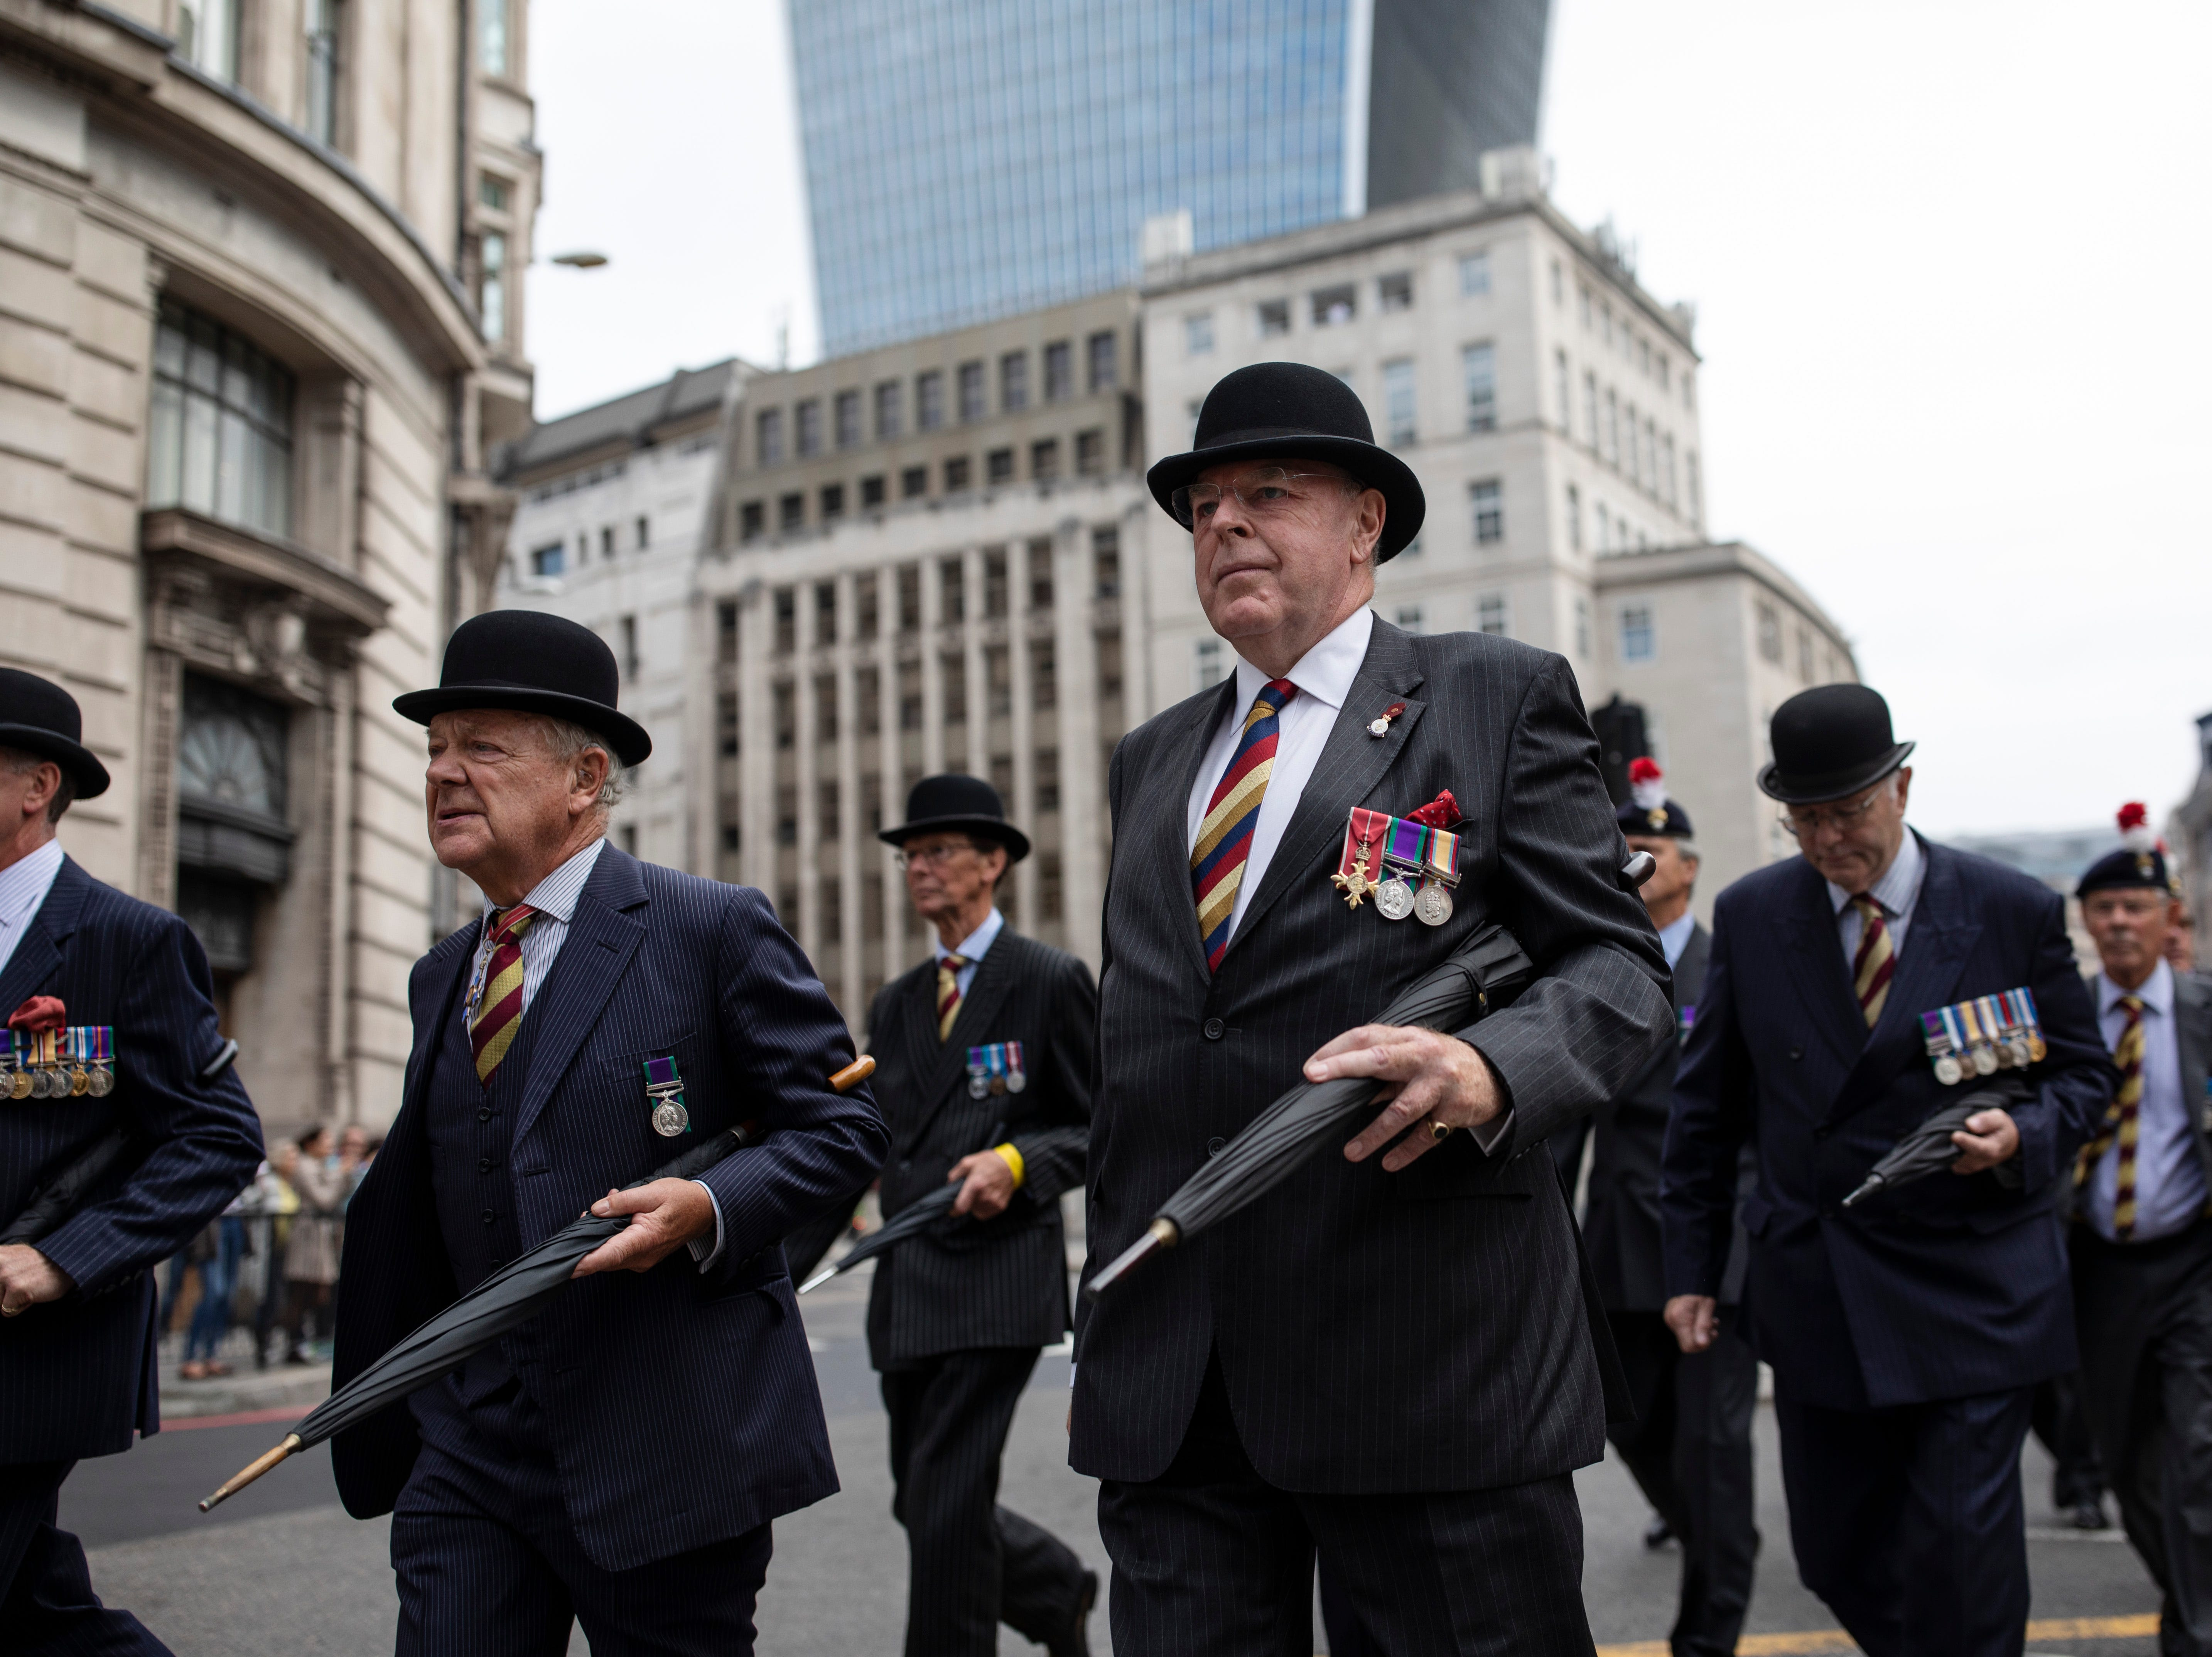 "Veterans march through the City of London on Sept. 5, 2018 in London, England. Serving and retired personnel of the Royal Fusiliers exercise their right to march through the Square Mile as one of the City of London's Privileged Regiments to celebrate its 50th anniversary. The Royal Regiment of Fusiliers, known as ""The Fusiliers,"" is an English infantry Regiment in the British Army, formed from four historic Fusilier Regiments in 1968."